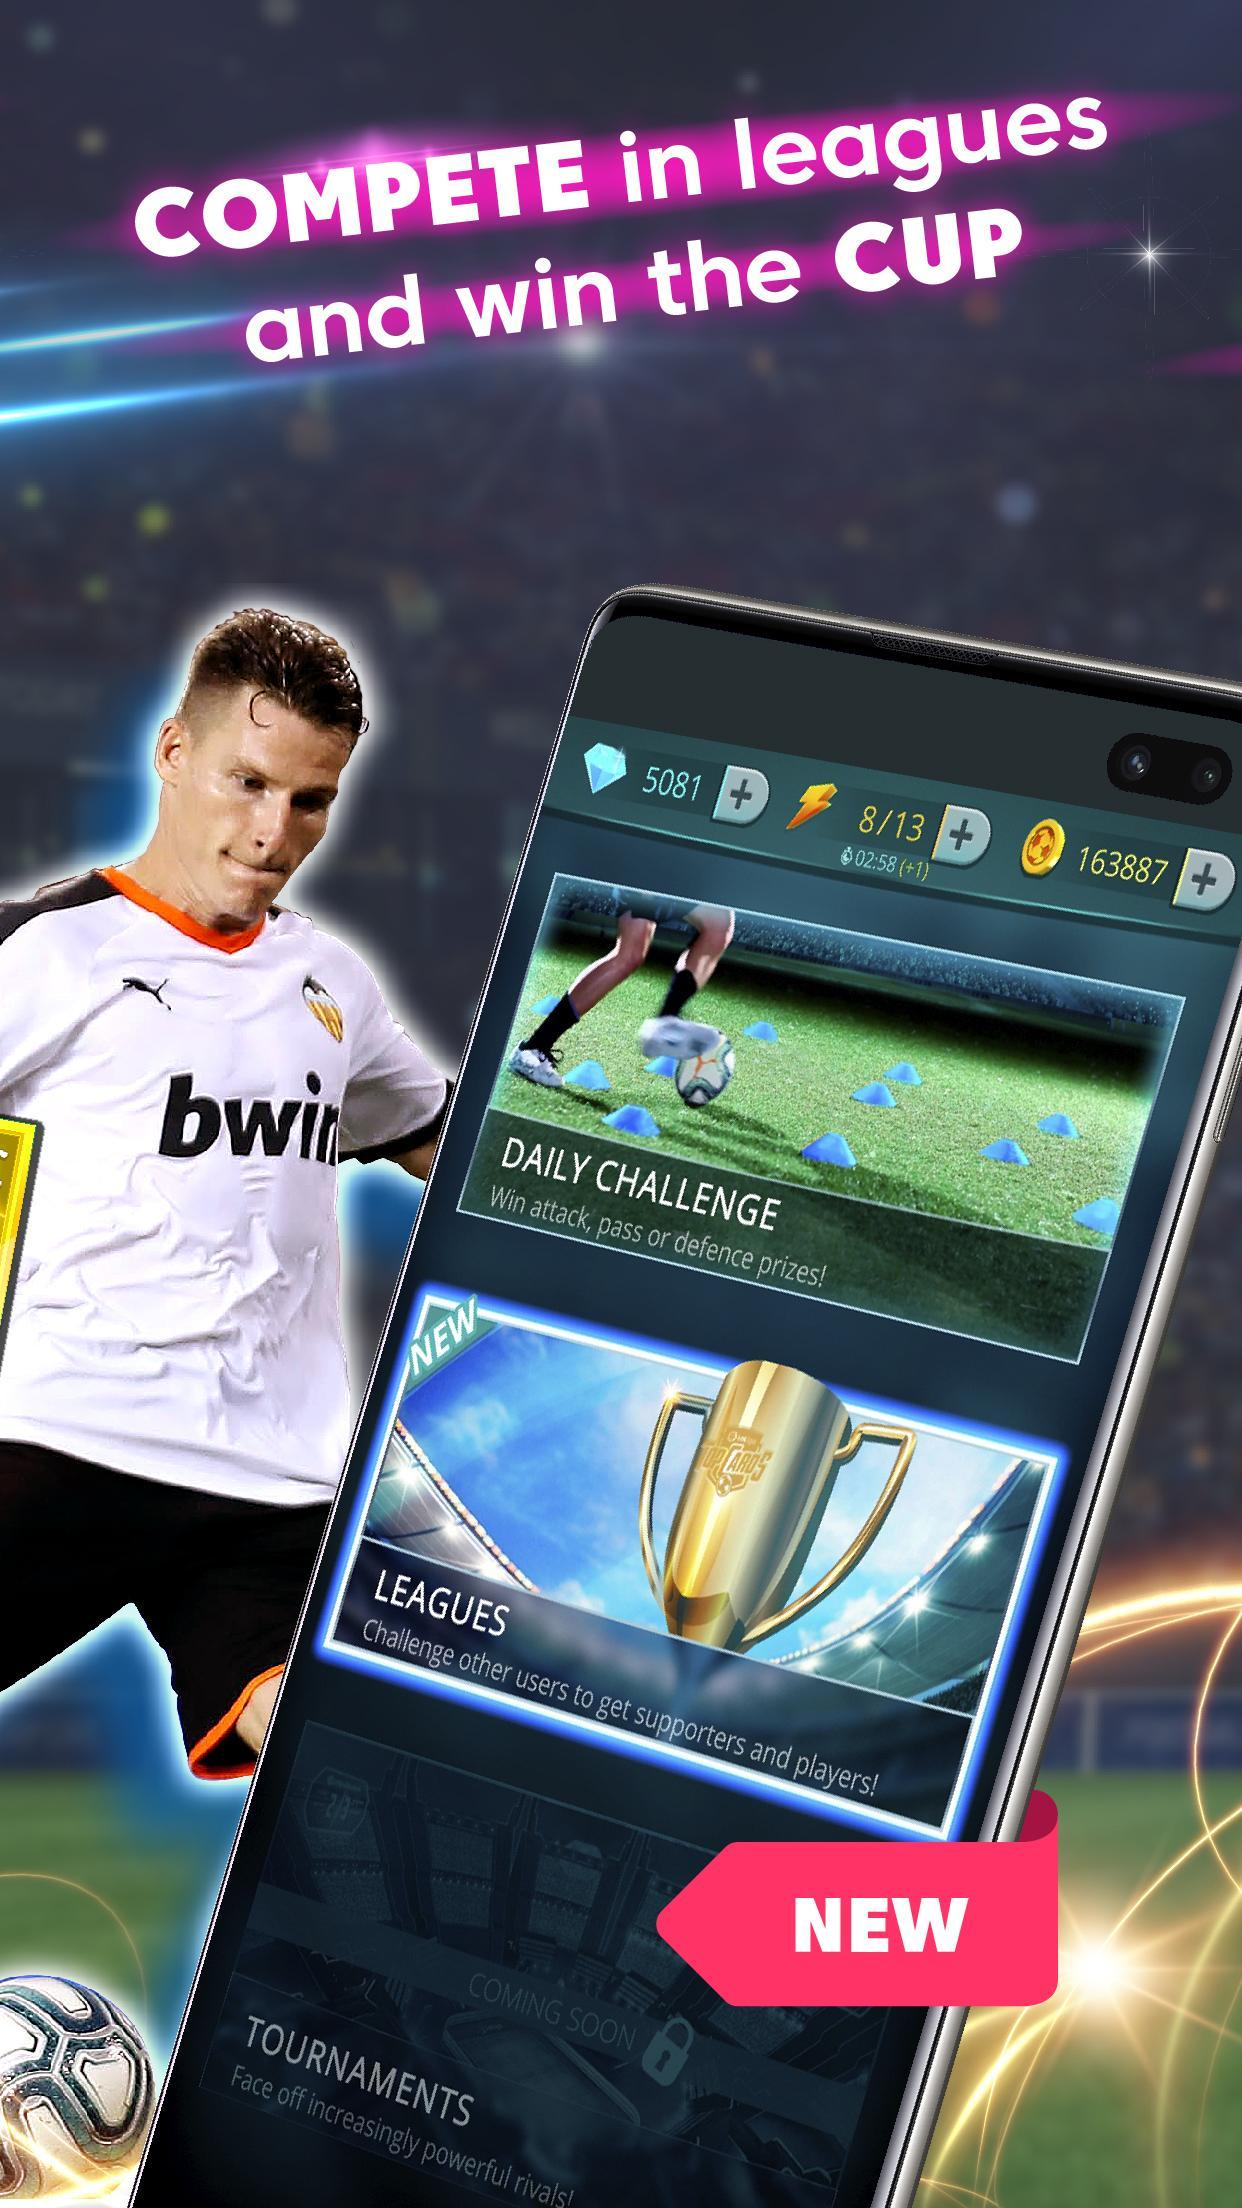 LaLiga Top Cards 2020 - Soccer Card Battle Game 4.1.4 Screenshot 3